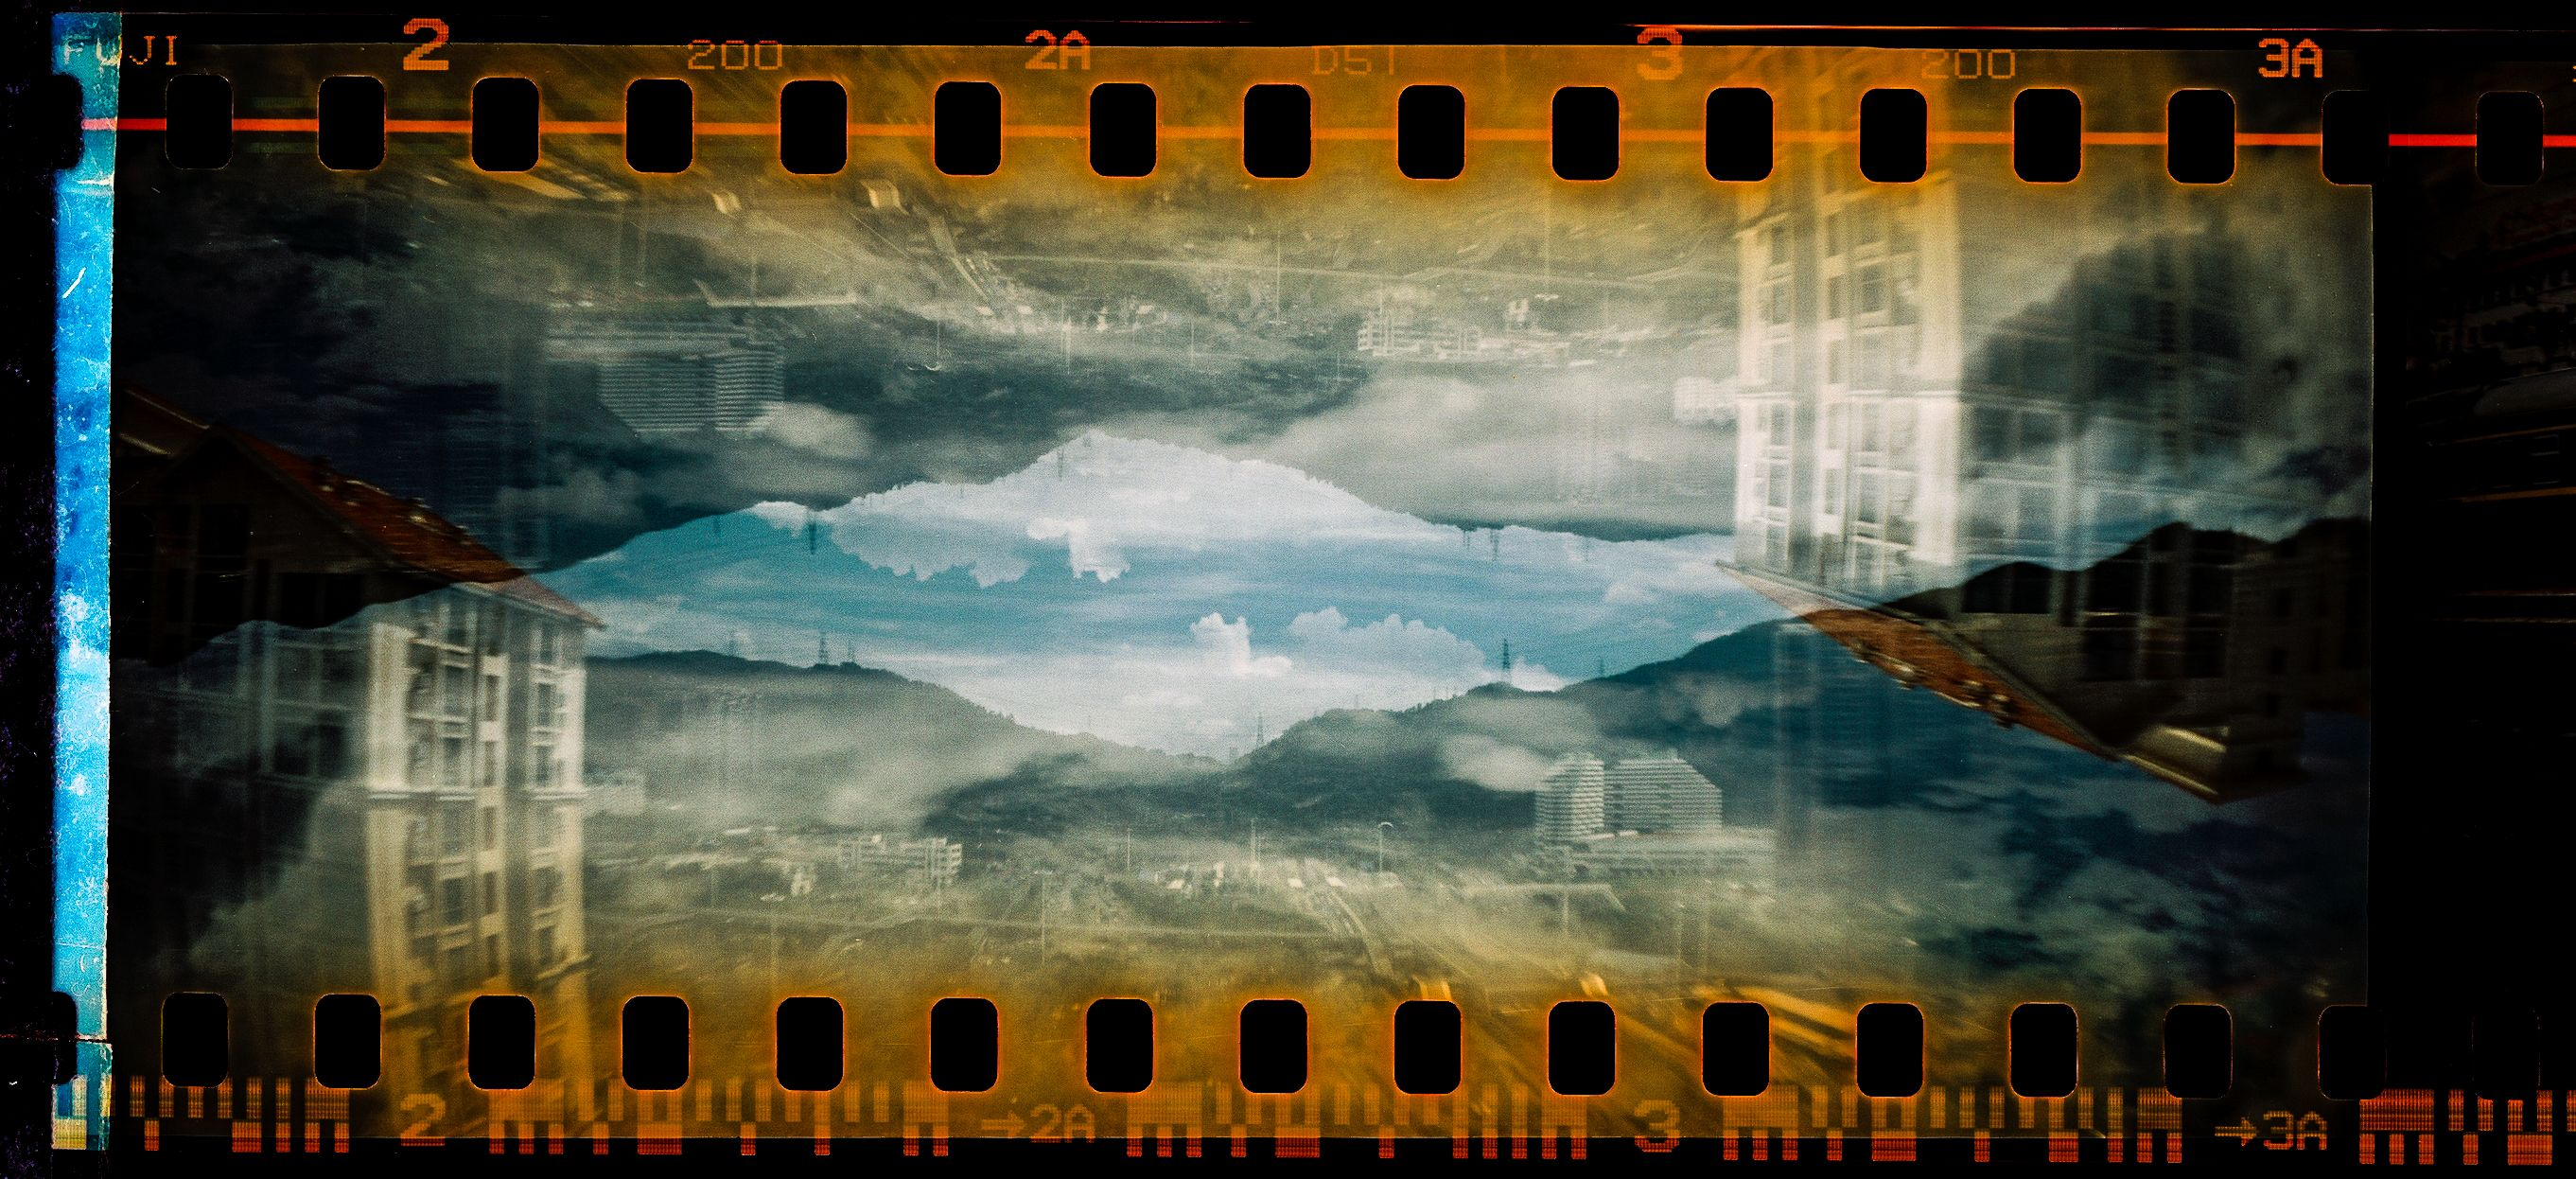 Double exposure (Pic: Jay SE1)